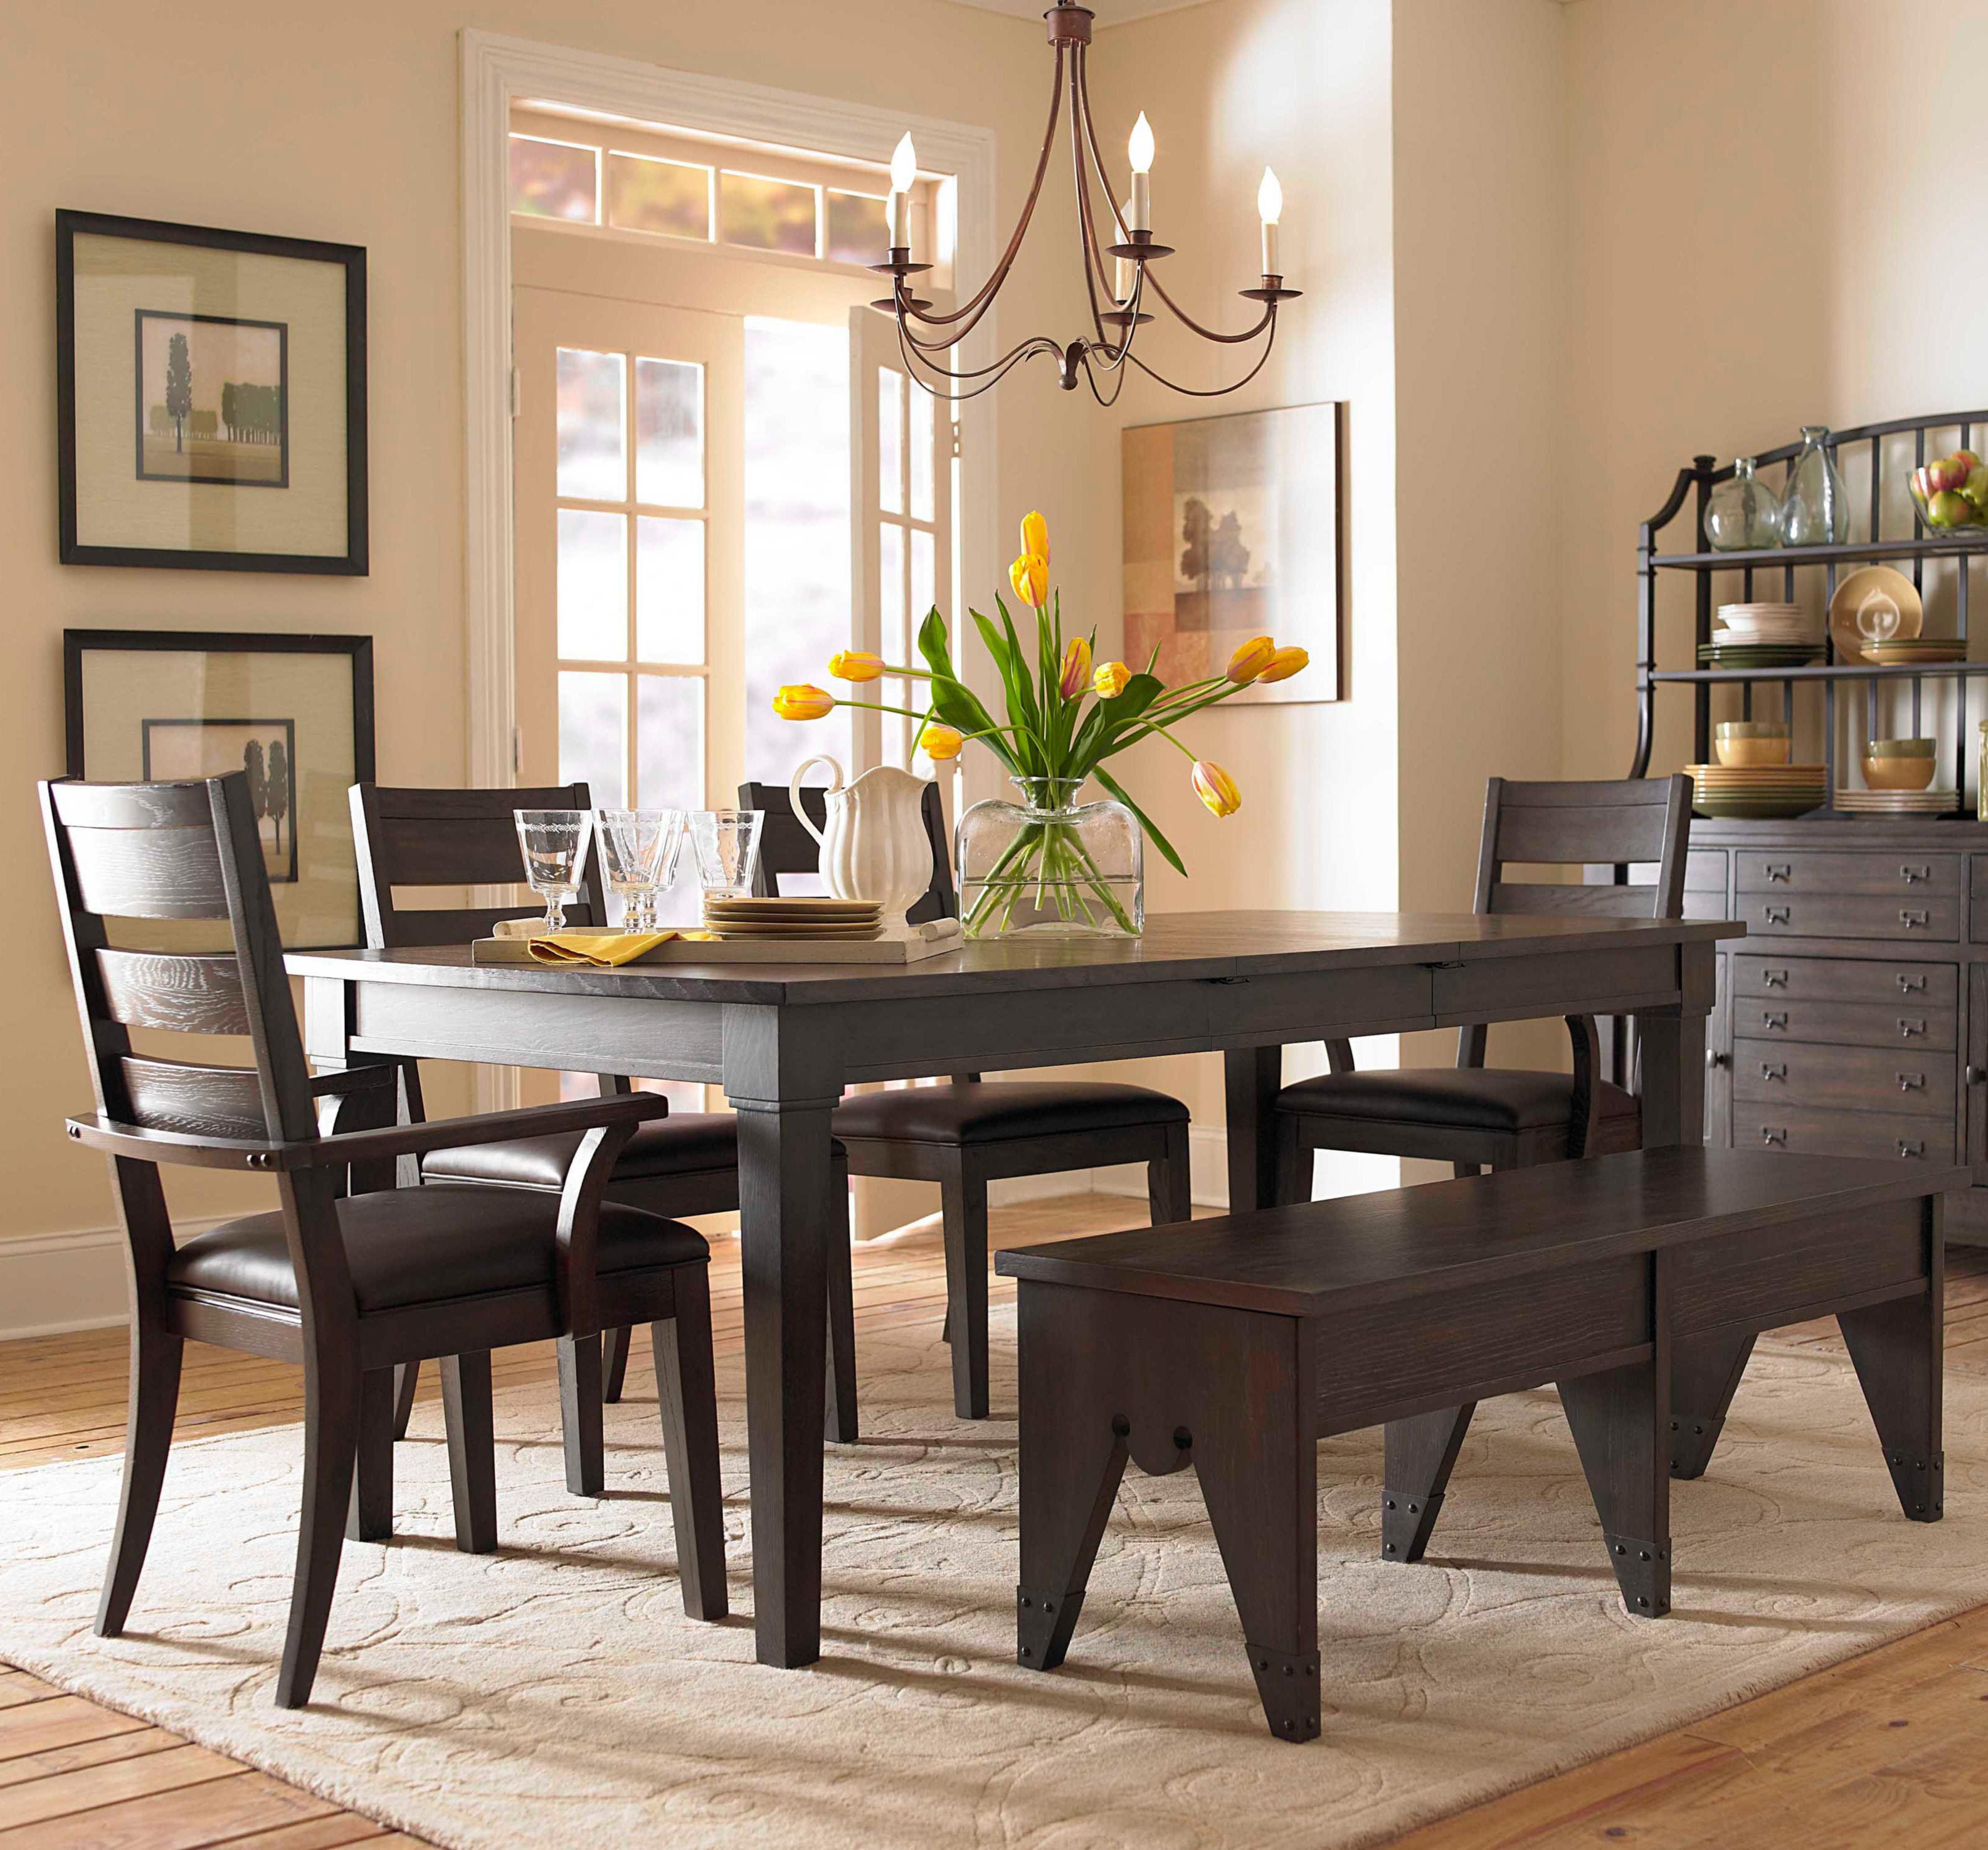 Awesome Traditional Dining Room Design Ideas  Ideas 29 Homes